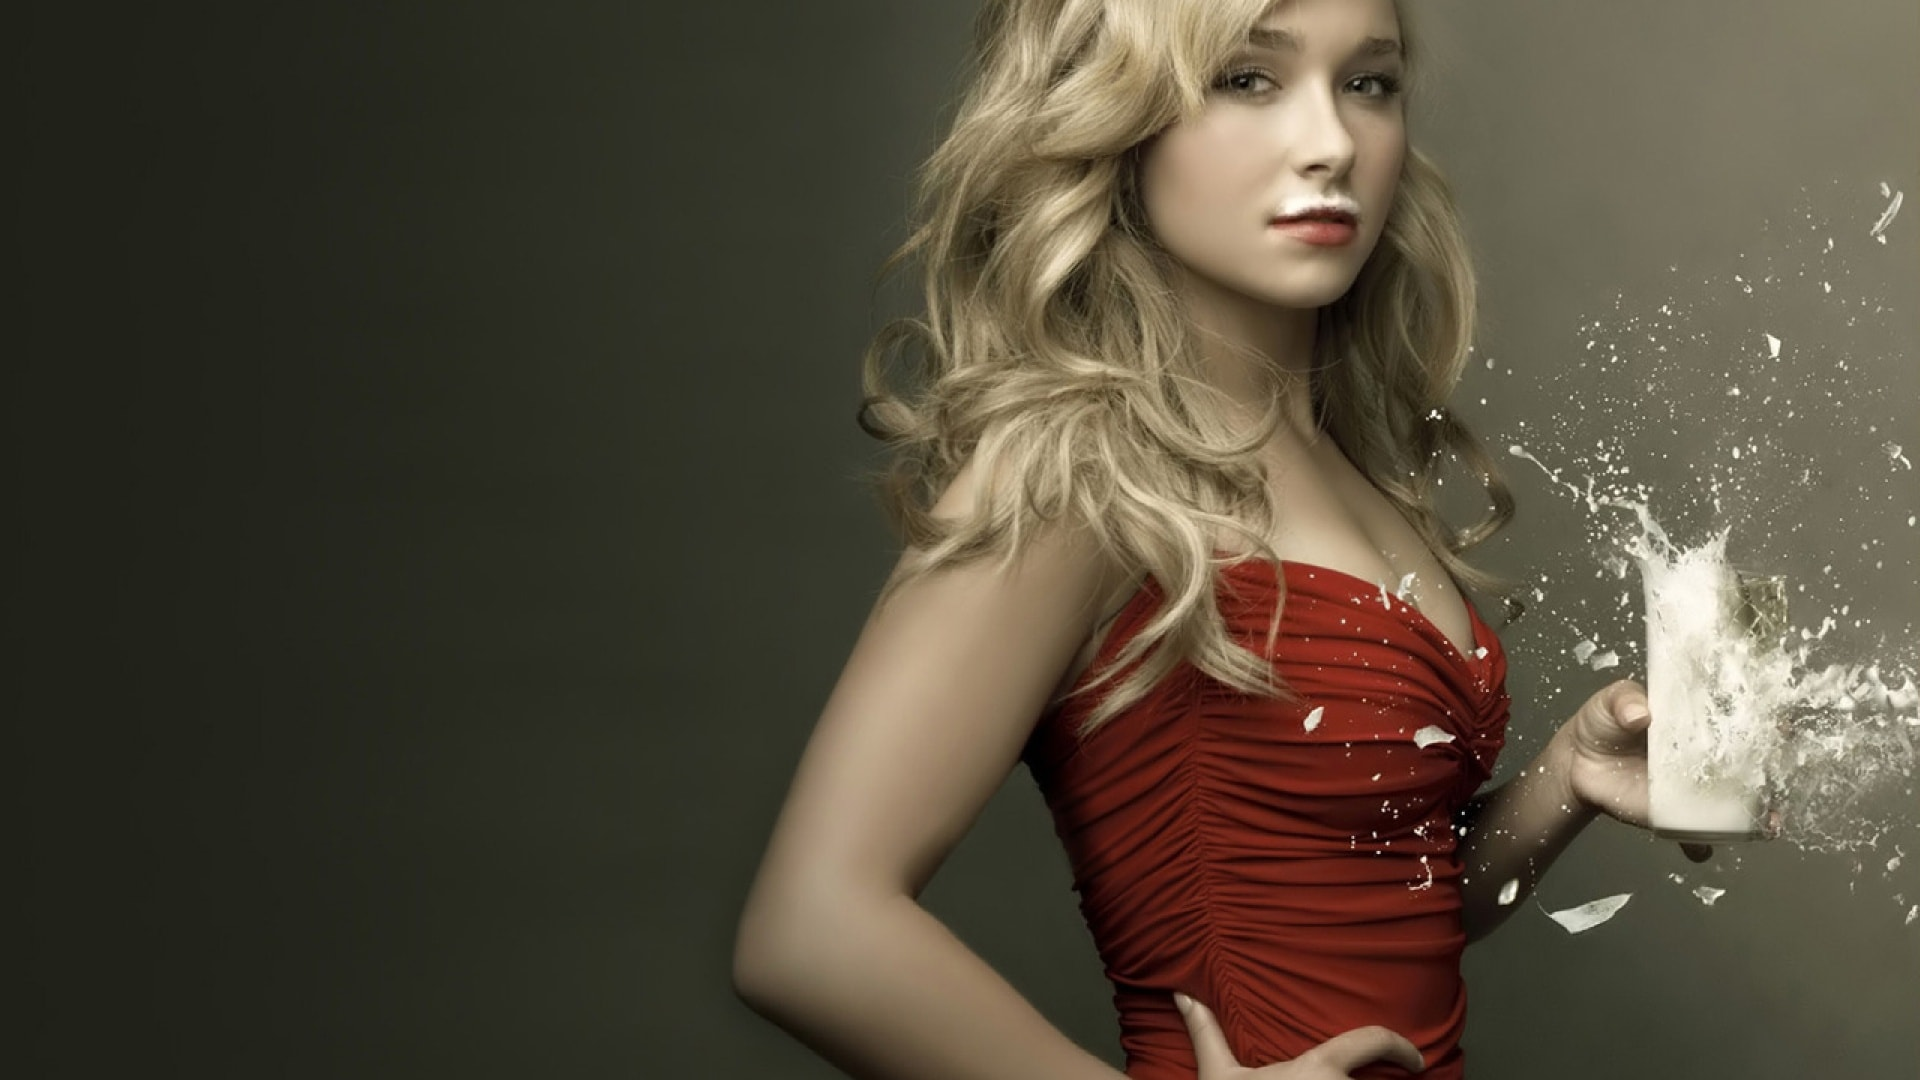 Hayden Panettiere Background